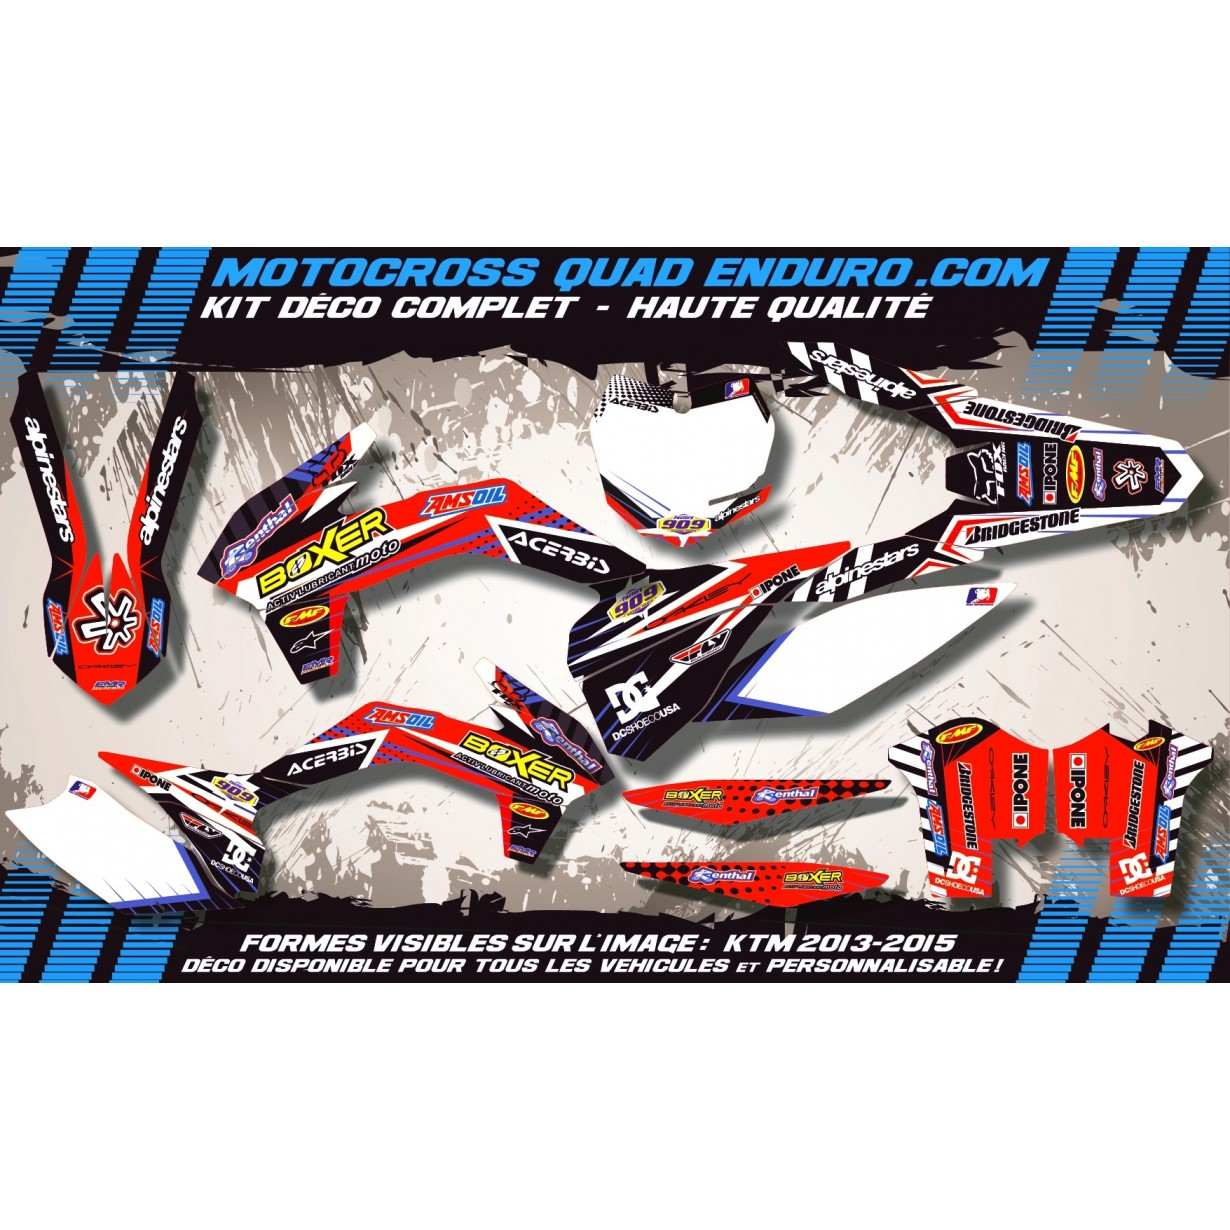 KIT DÉCO Perso 650 XR 00-09 BOXER MA1A